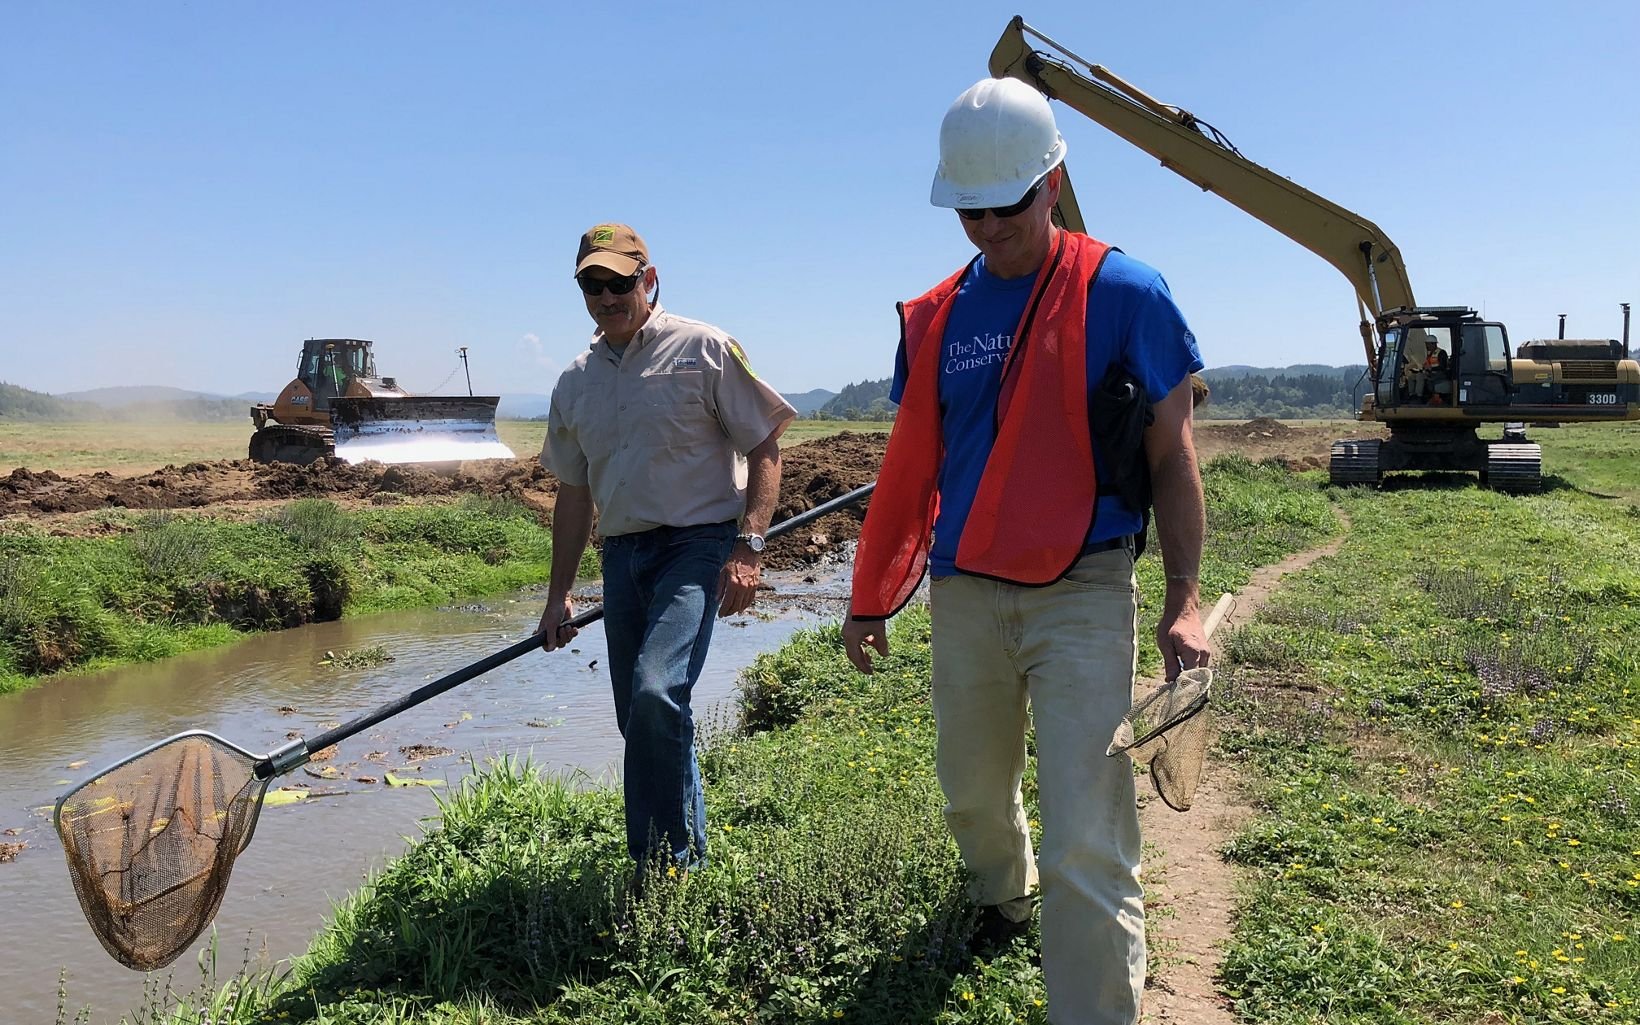 The Nature Conservancy's Jason Nuckols surveys the project site with Oregon Department of Fish and Wildlife's Stuart Love.